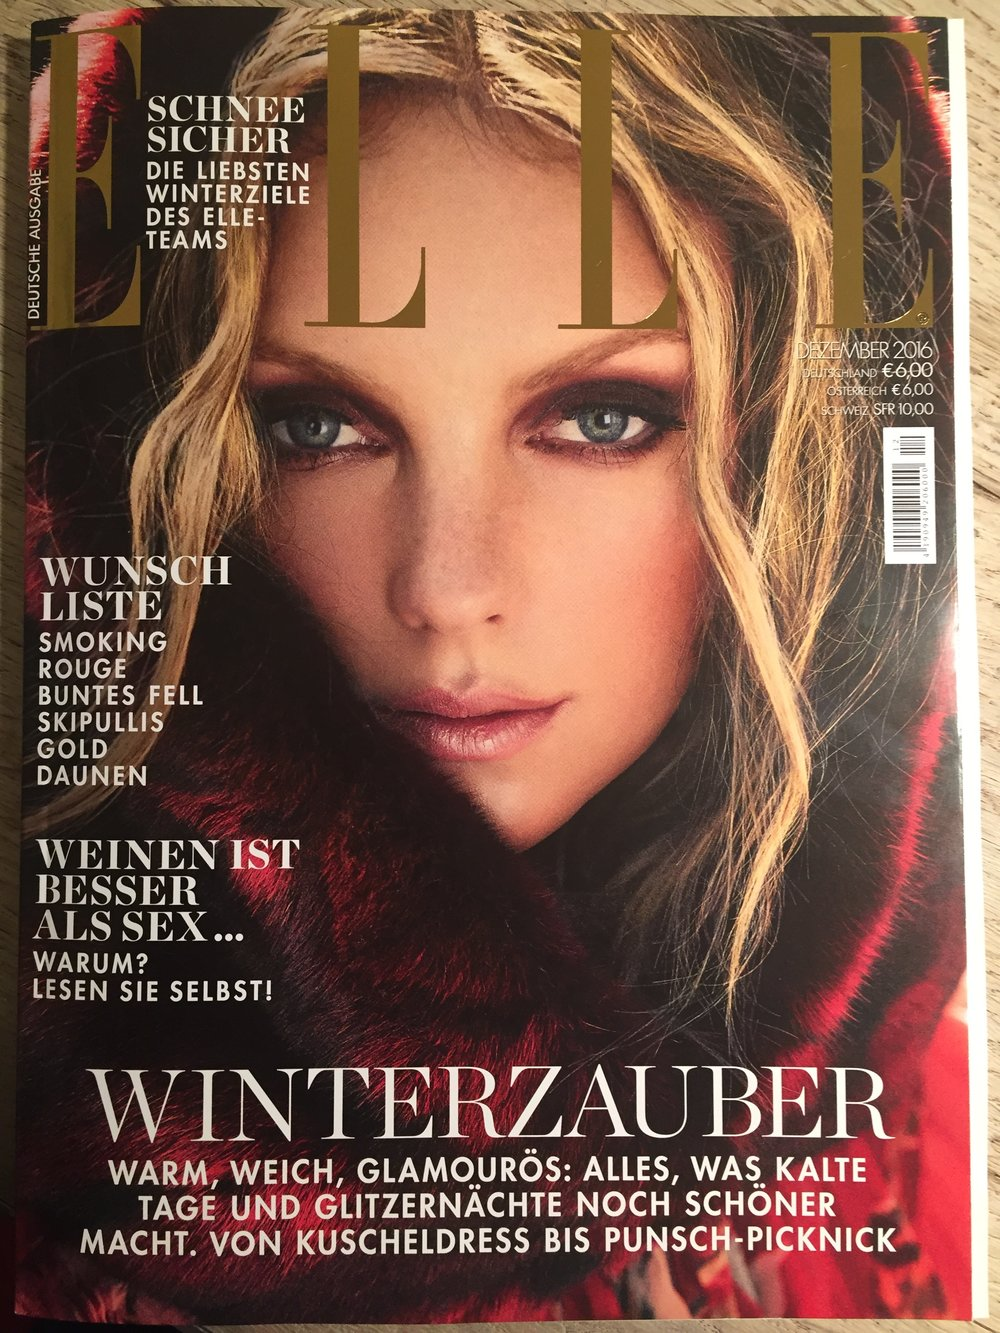 Thank you @ELLE_de